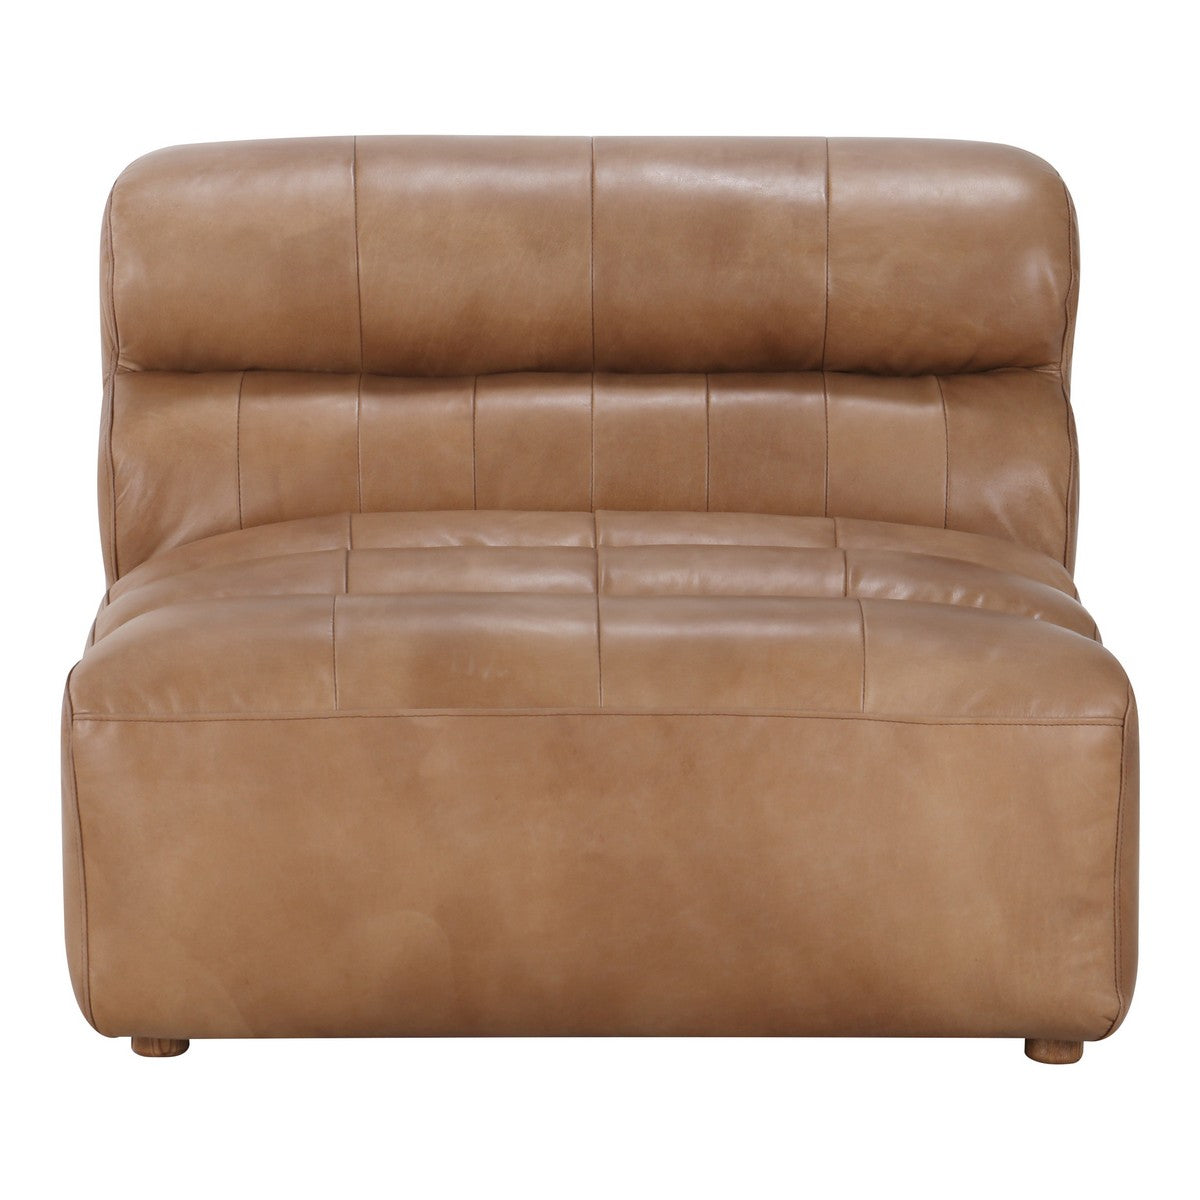 Moe's Home Collection Ramsay Leather Slipper Chair Tan - QN-1009-40 - Moe's Home Collection - Slipper Chairs - Minimal And Modern - 1